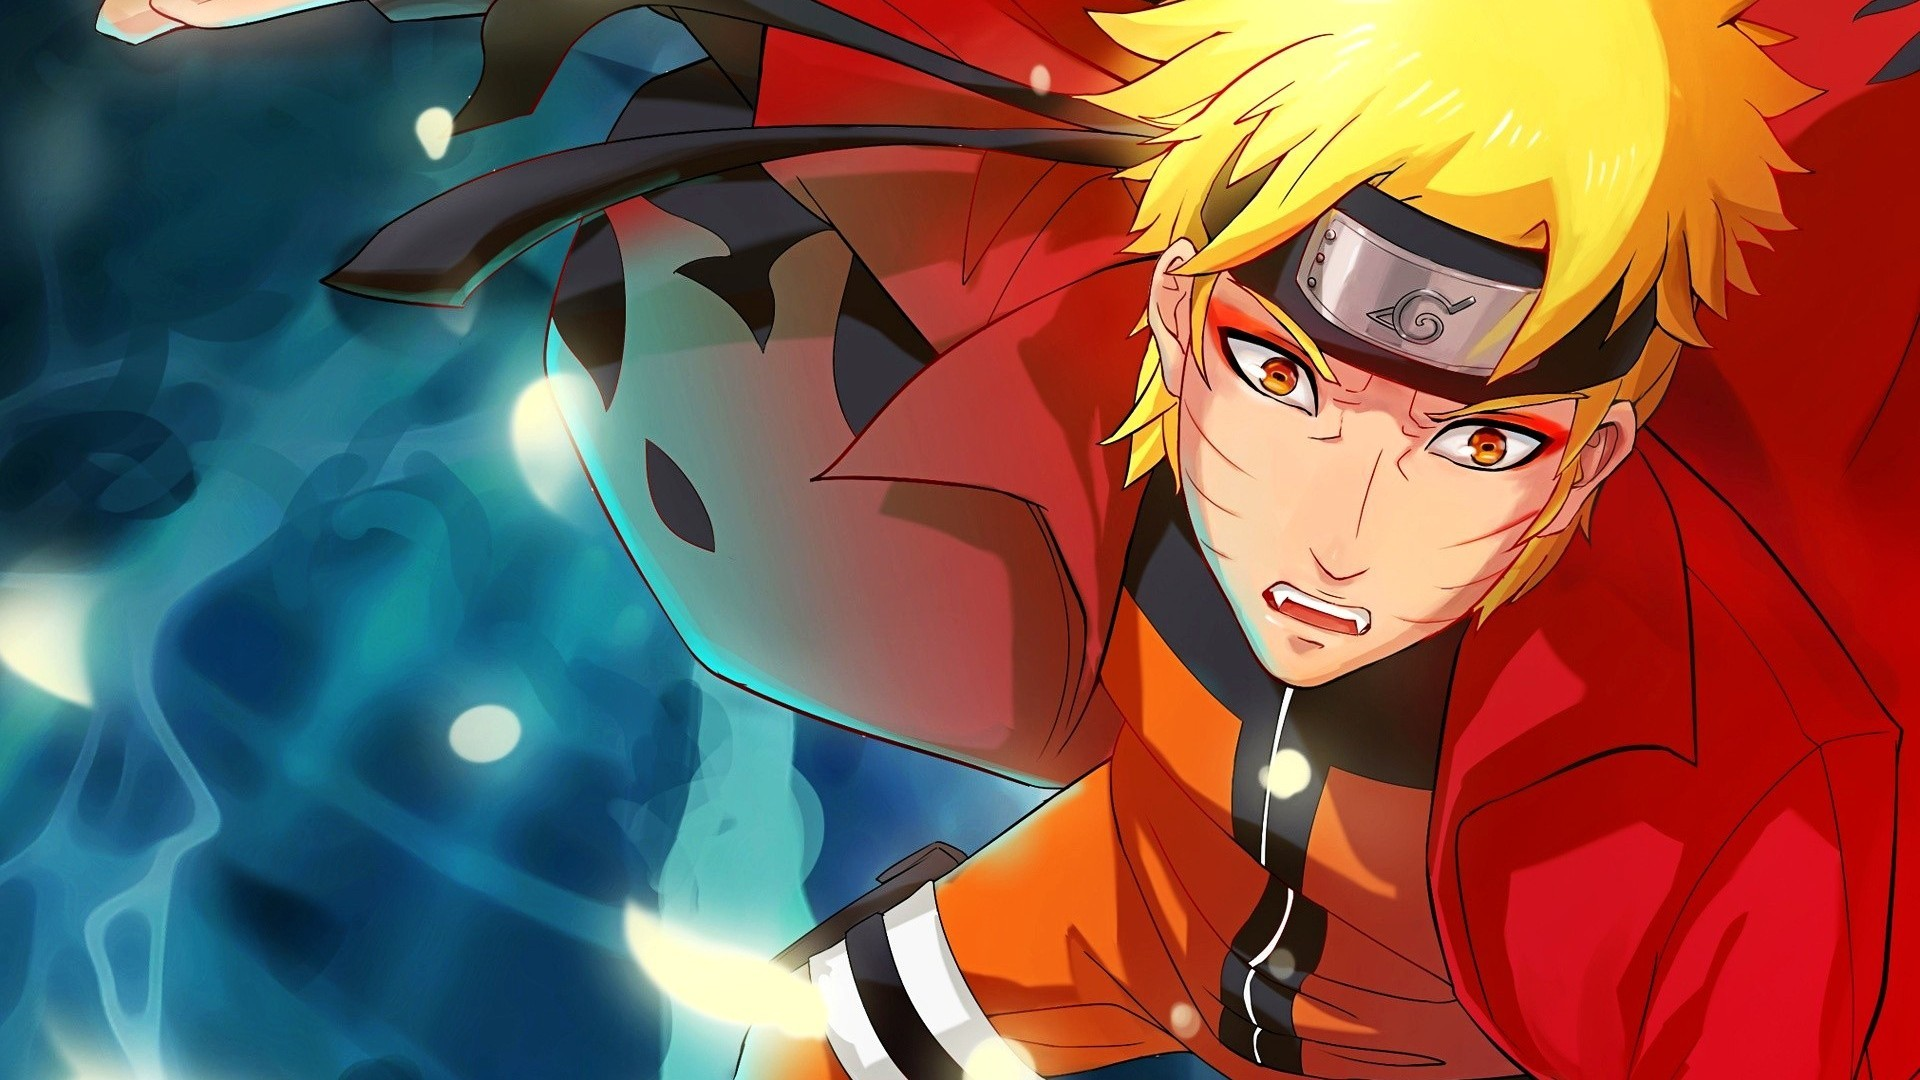 Wallpapers Of Naruto Characters 57 Images